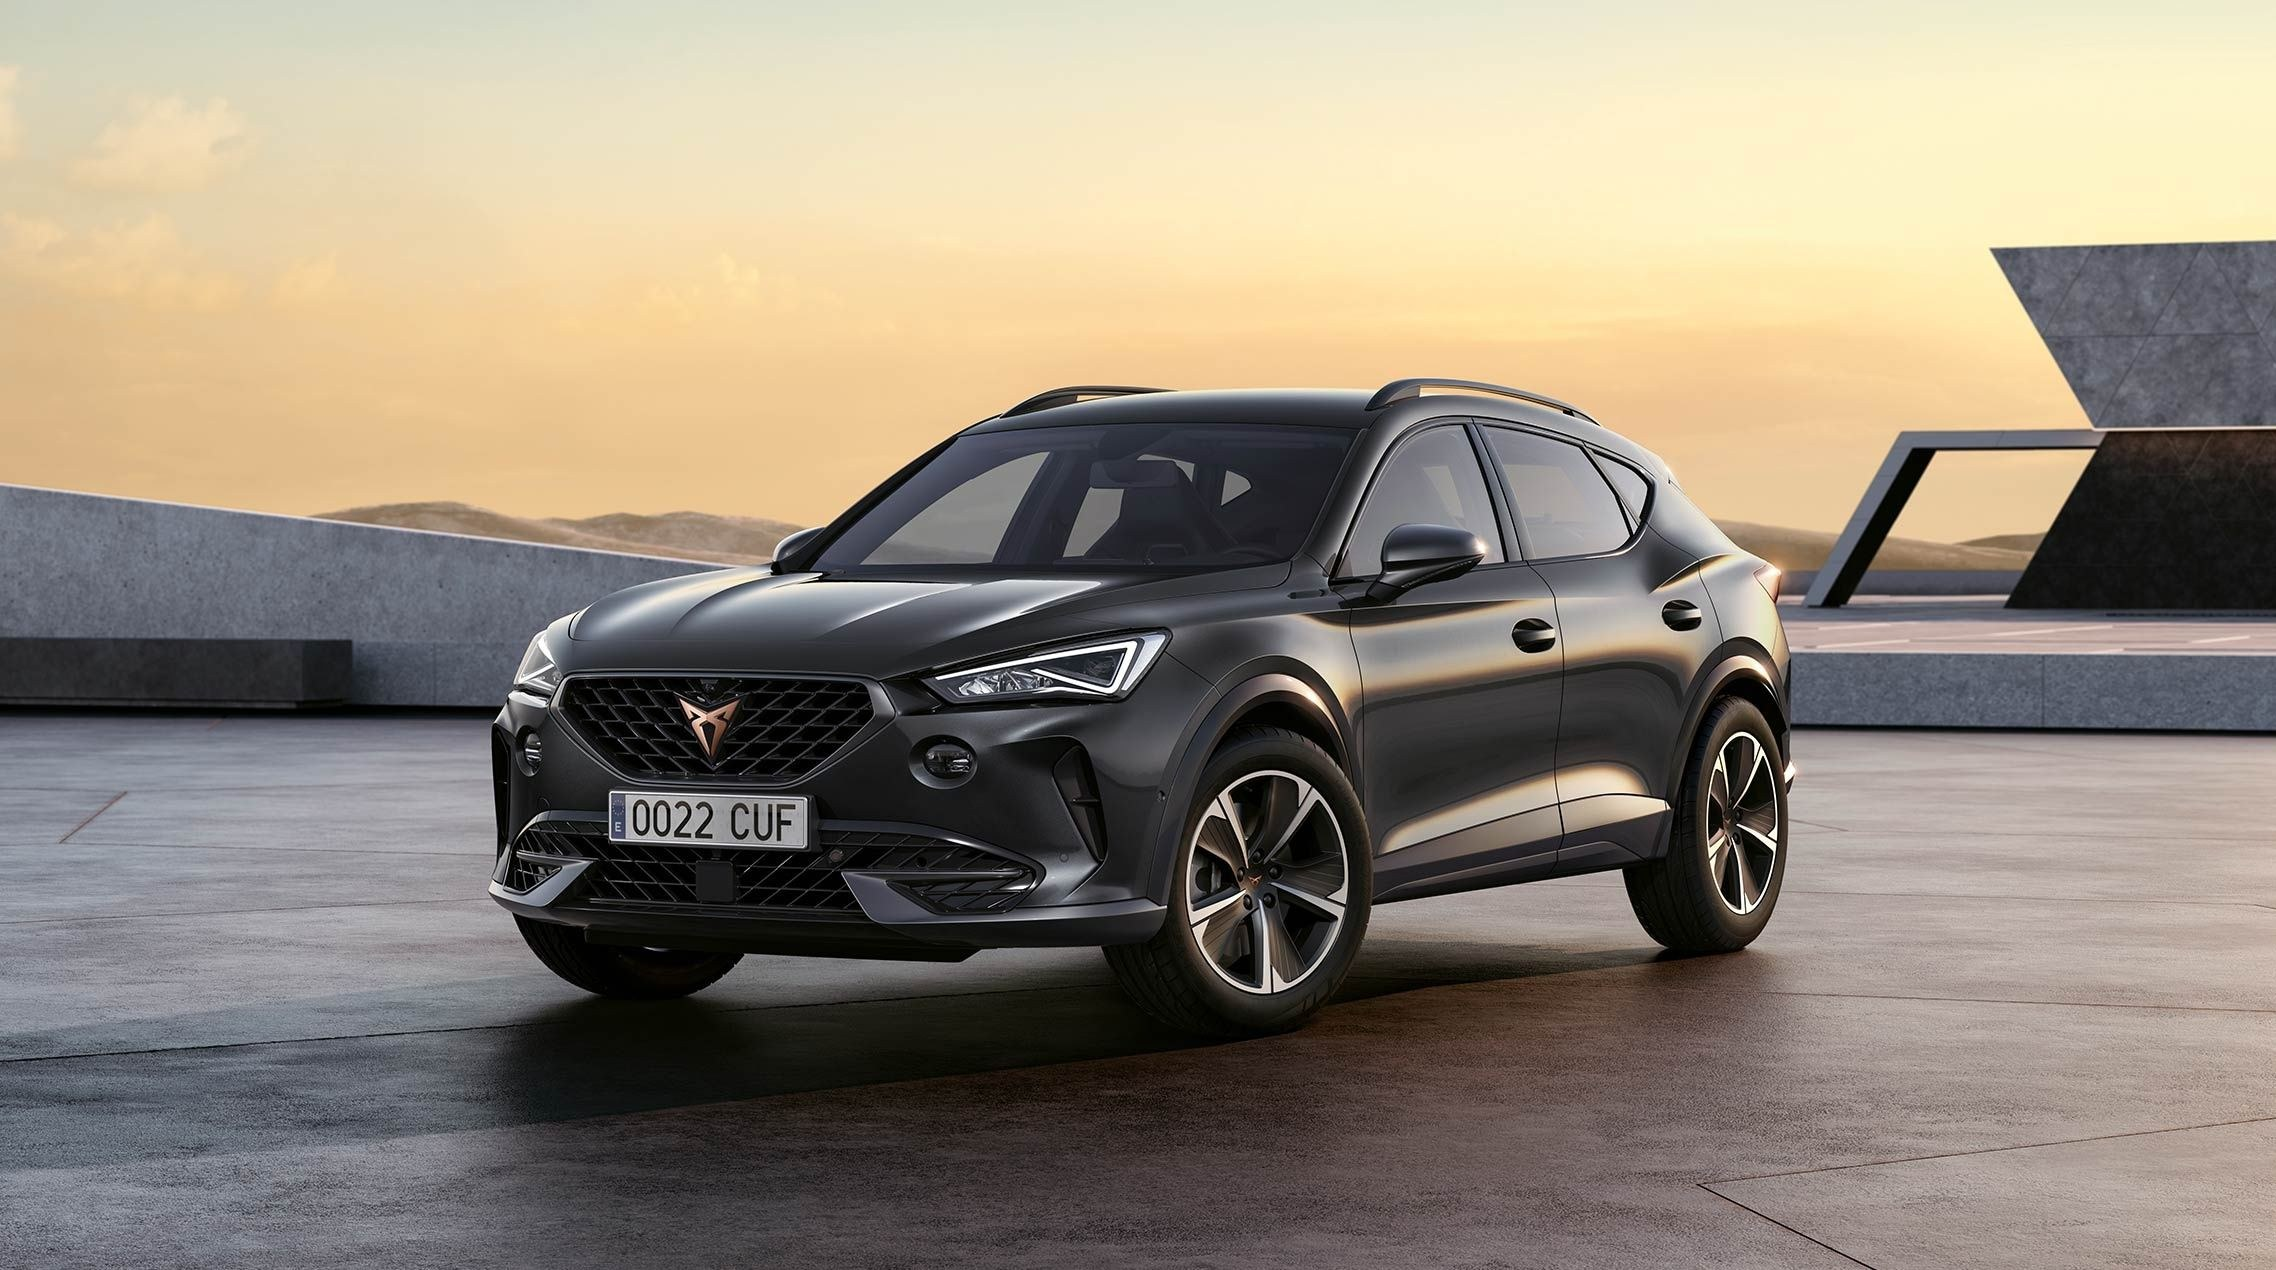 new-cupra-formentor-with-an-innovating-and-dynamic-design-cuf